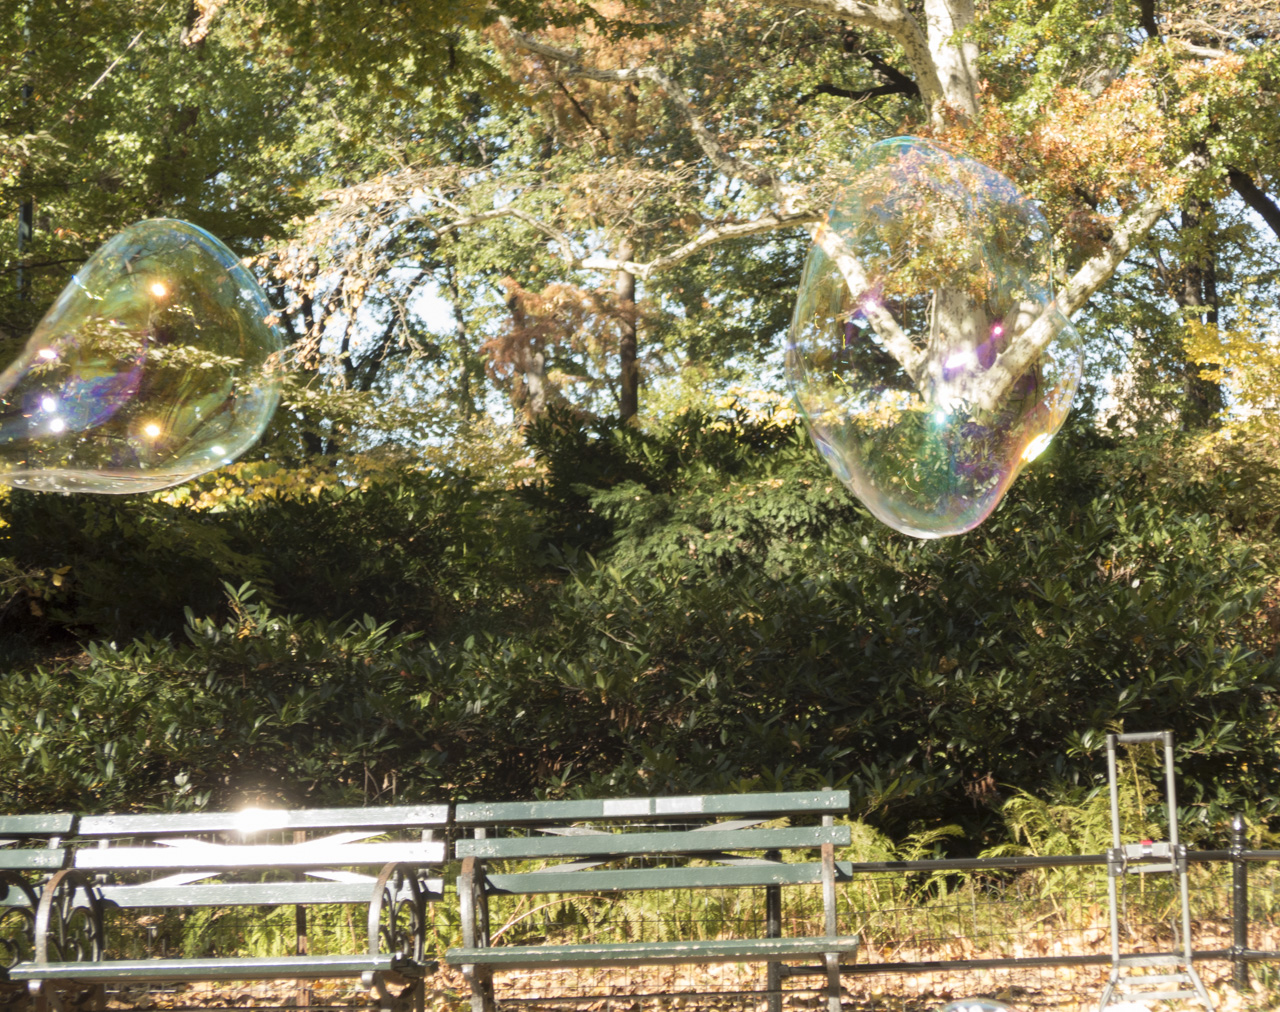 Transparence Bulle New York Central Park The New Wardrobe Mode éthique